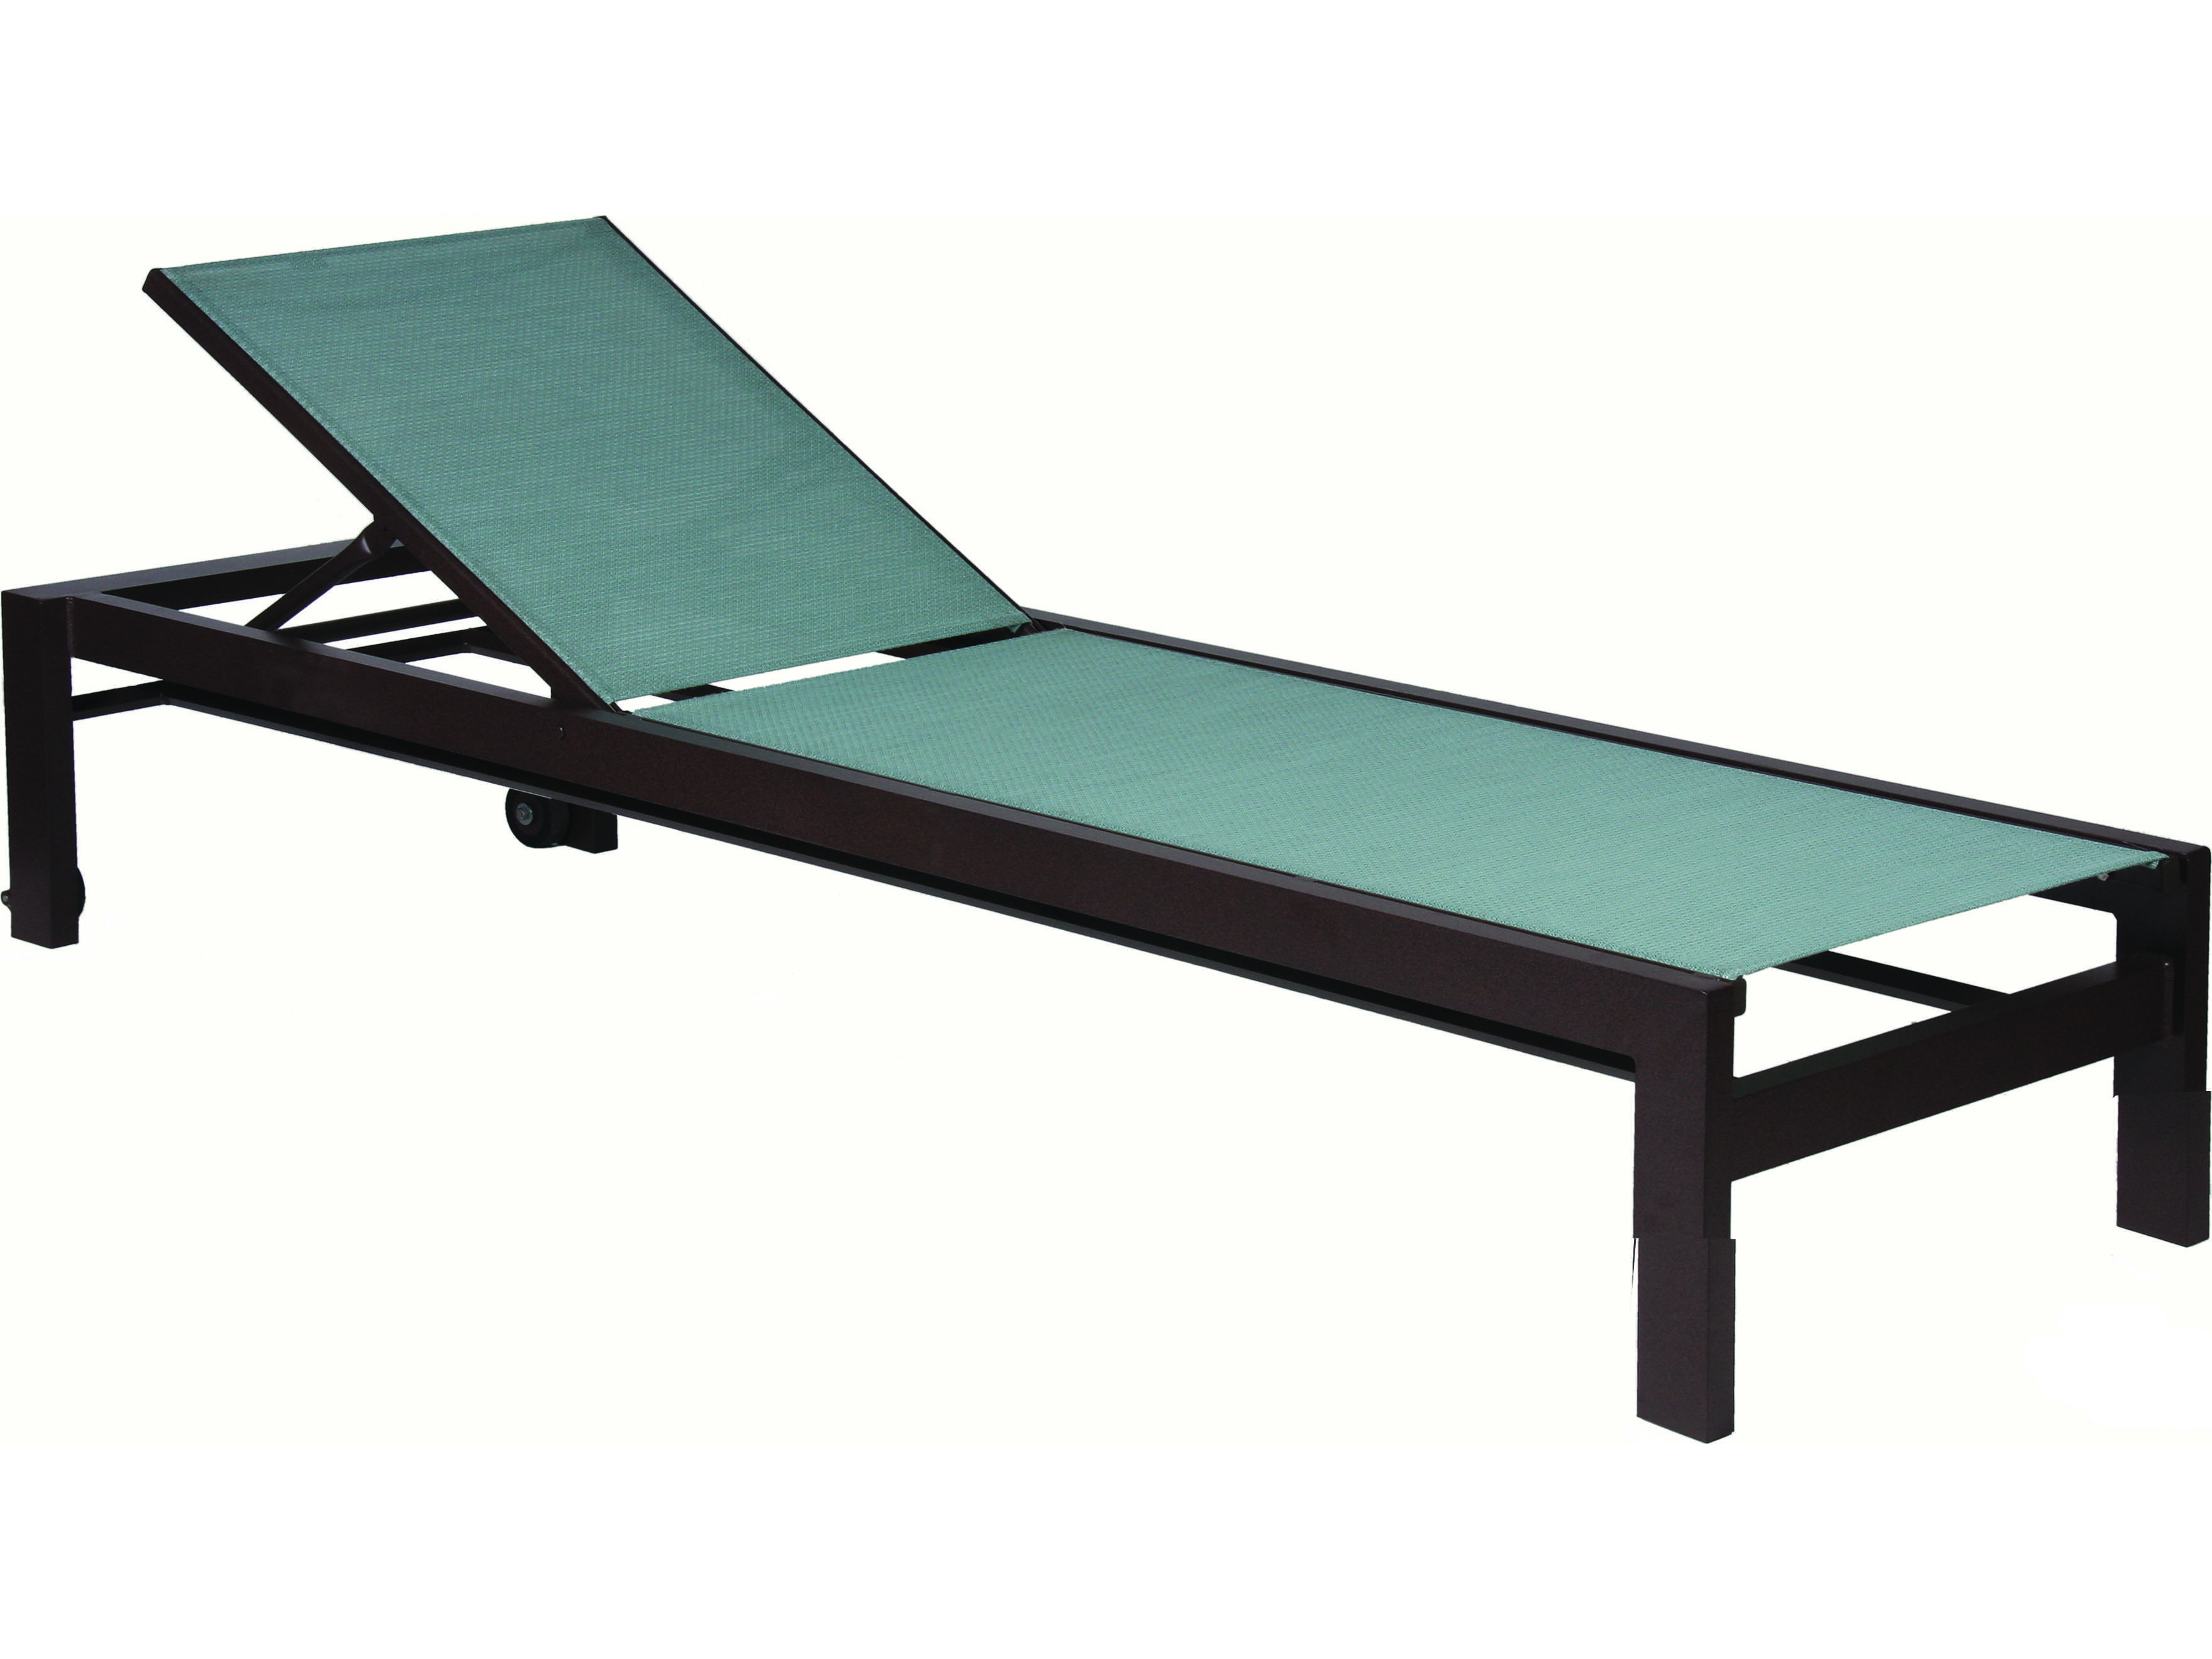 metal chaise lounge with wheels 28 images metal chaise. Black Bedroom Furniture Sets. Home Design Ideas